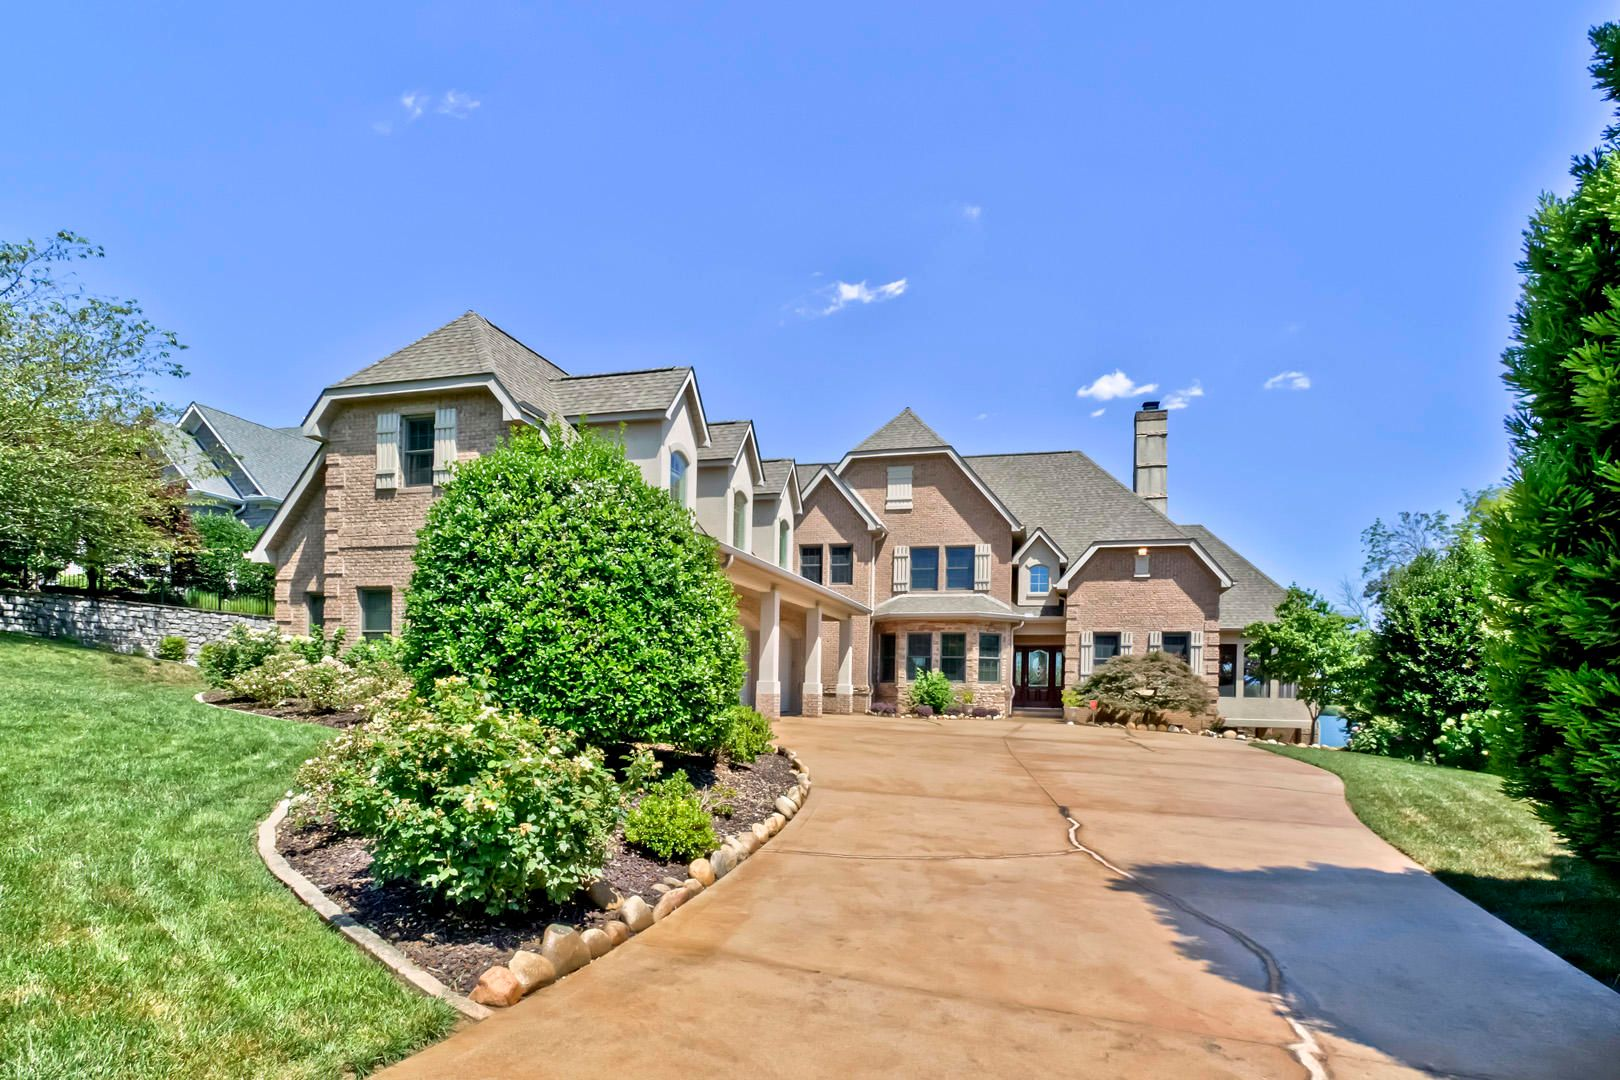 01_RockPointDrive_209_Front